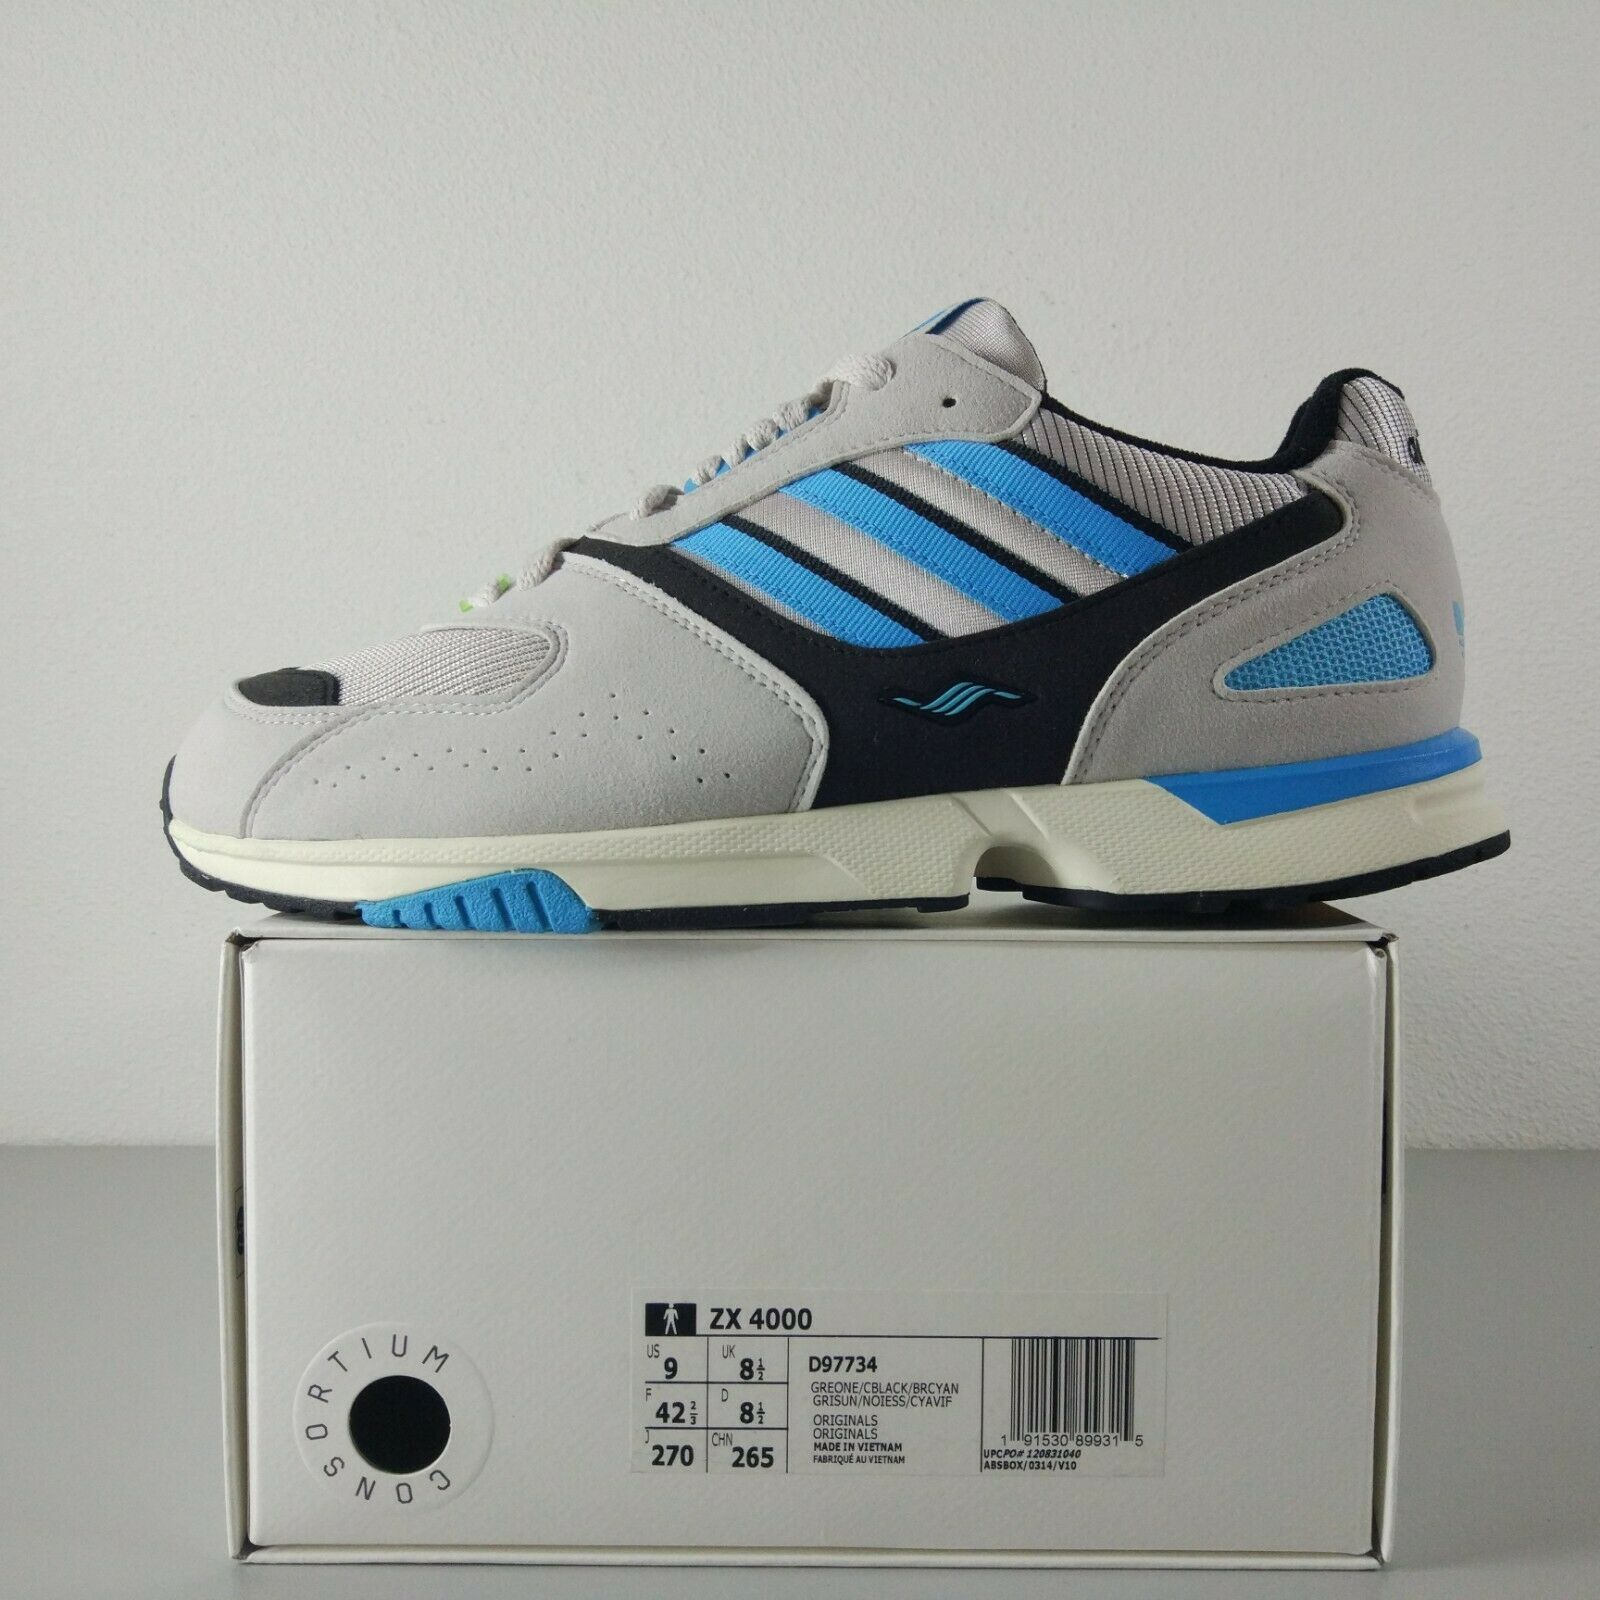 06d6304a Adidas Torsion ZX 4000 US 9 UK 8.5 Vintage OG 8000 5000 BNIB 4500 7000